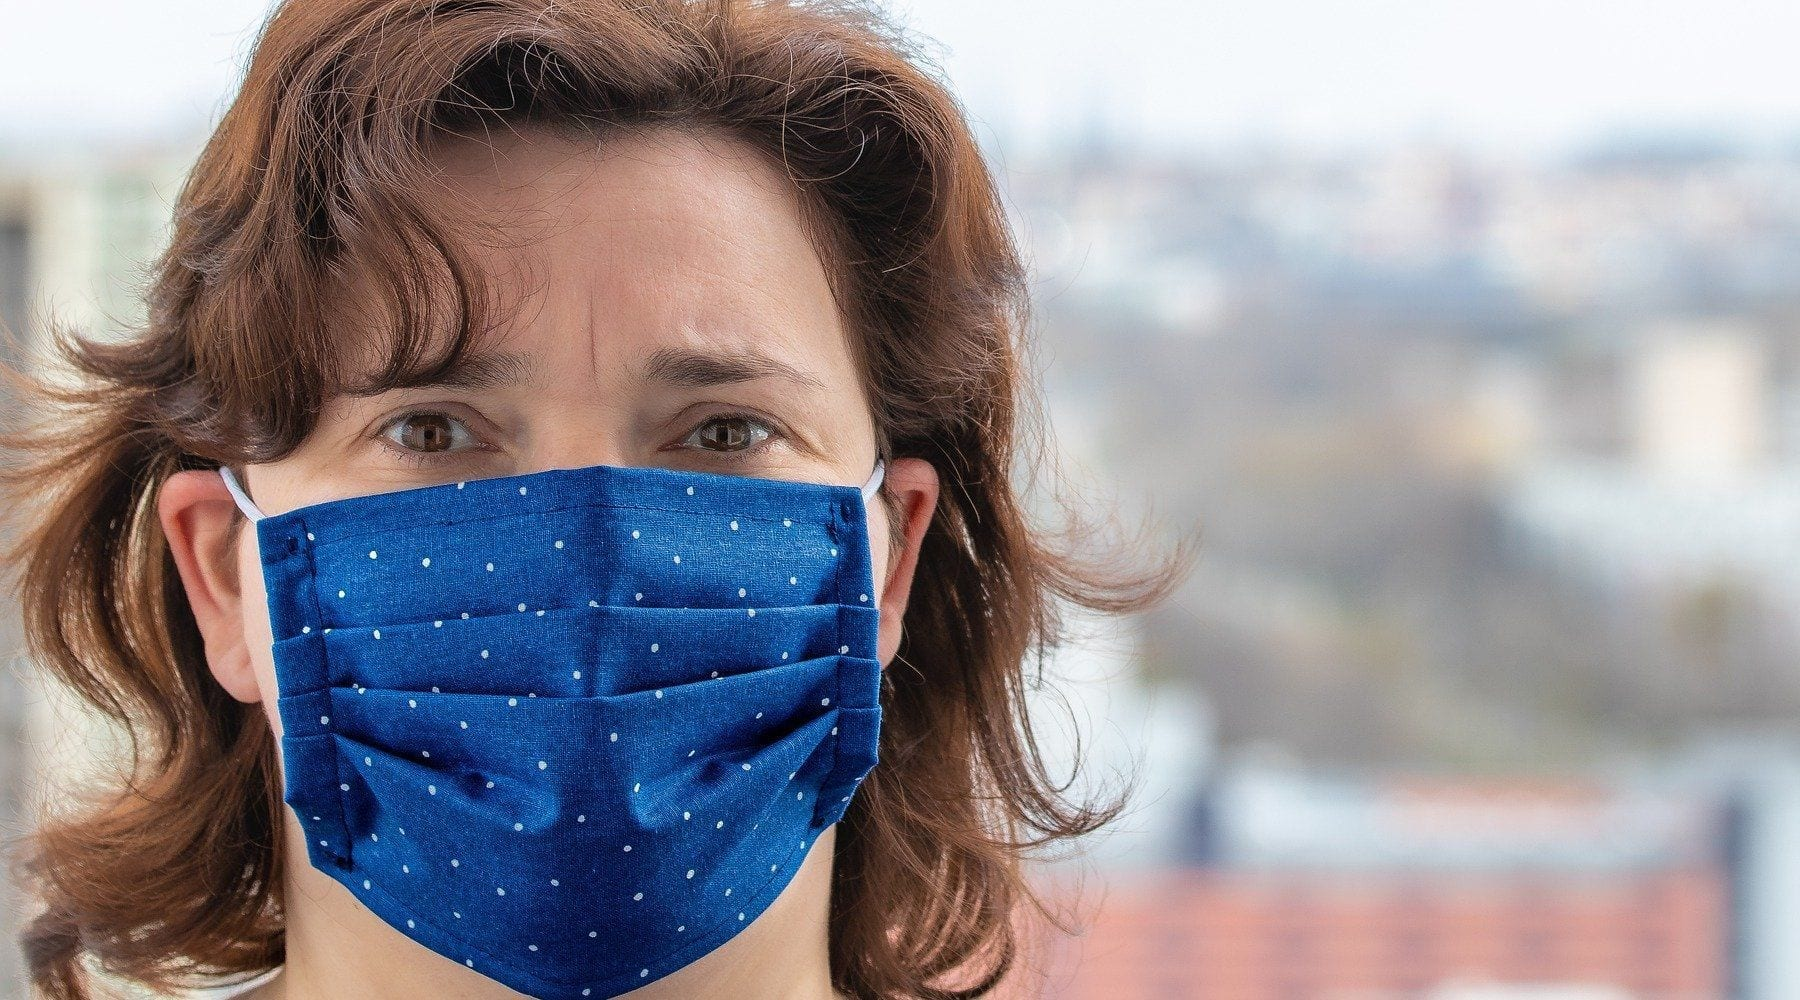 Do You Need to Don Face Masks in Coronavirus Pandemic?